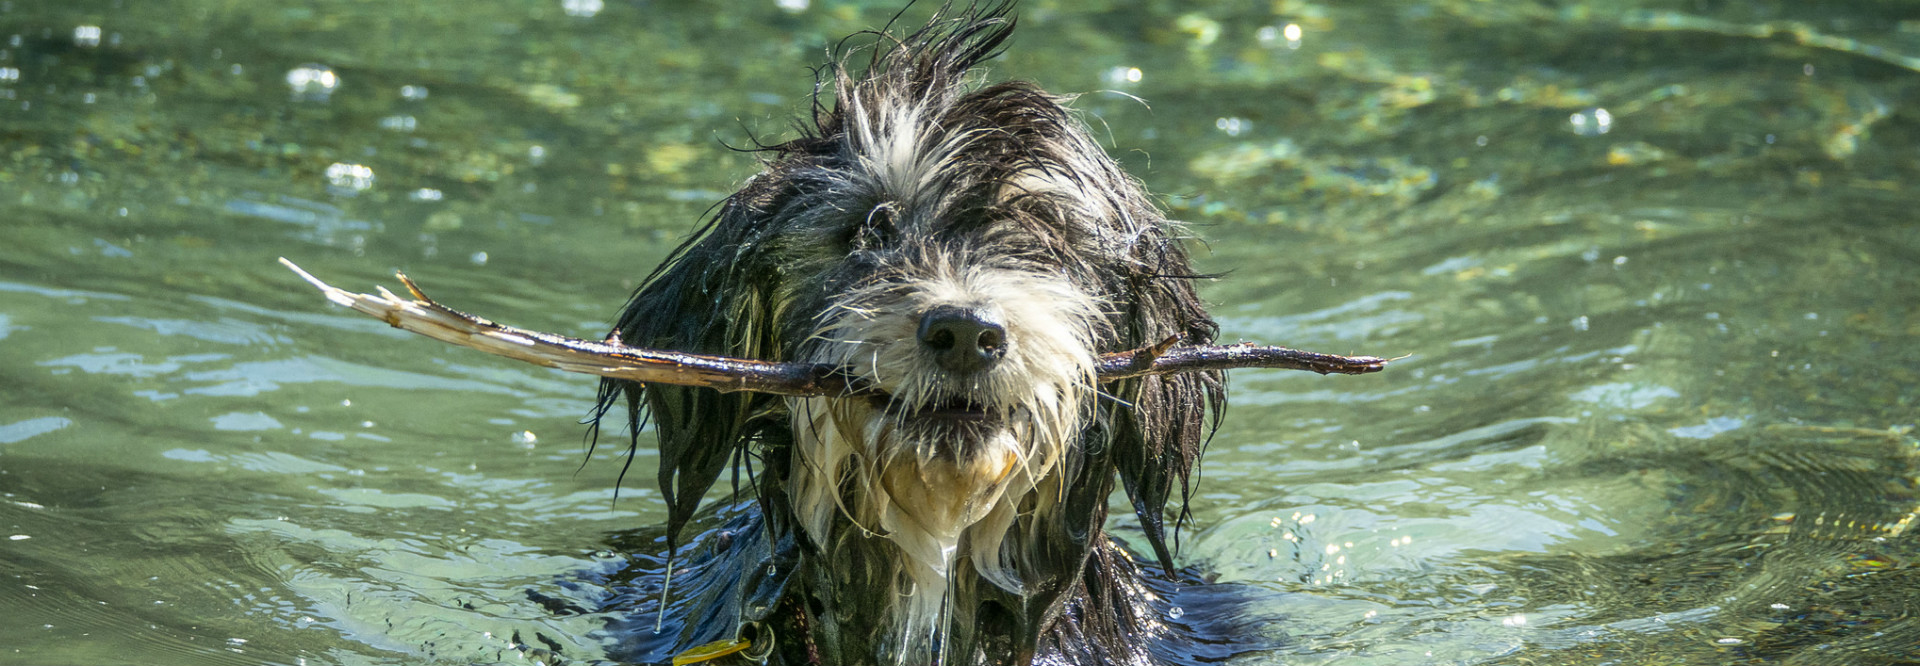 A fuzzy gray and white dog swims in a clear lake with a stick in its mouth.